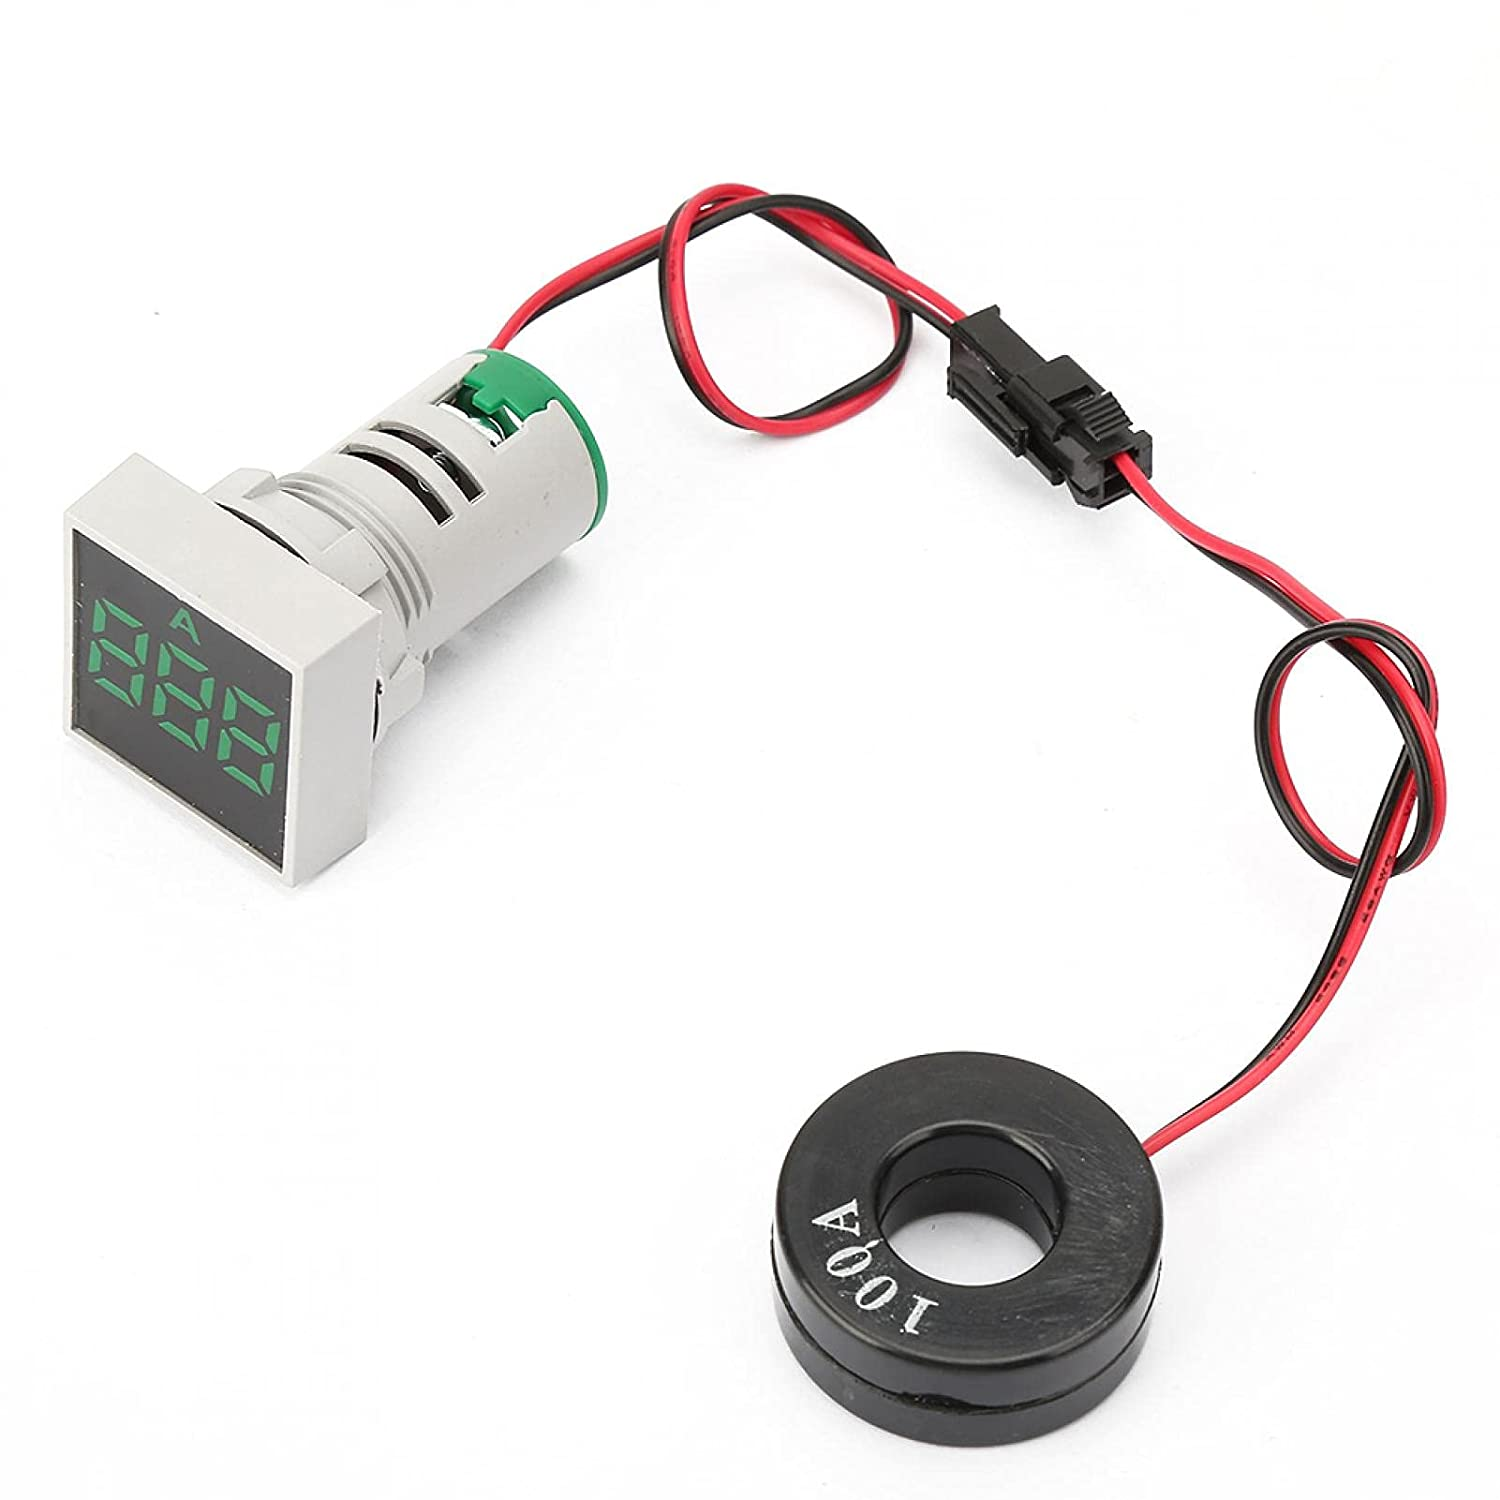 Lightweight Meter LED Indicator Light Res Good Size Impact Small Cheap mail order shopping Max 54% OFF